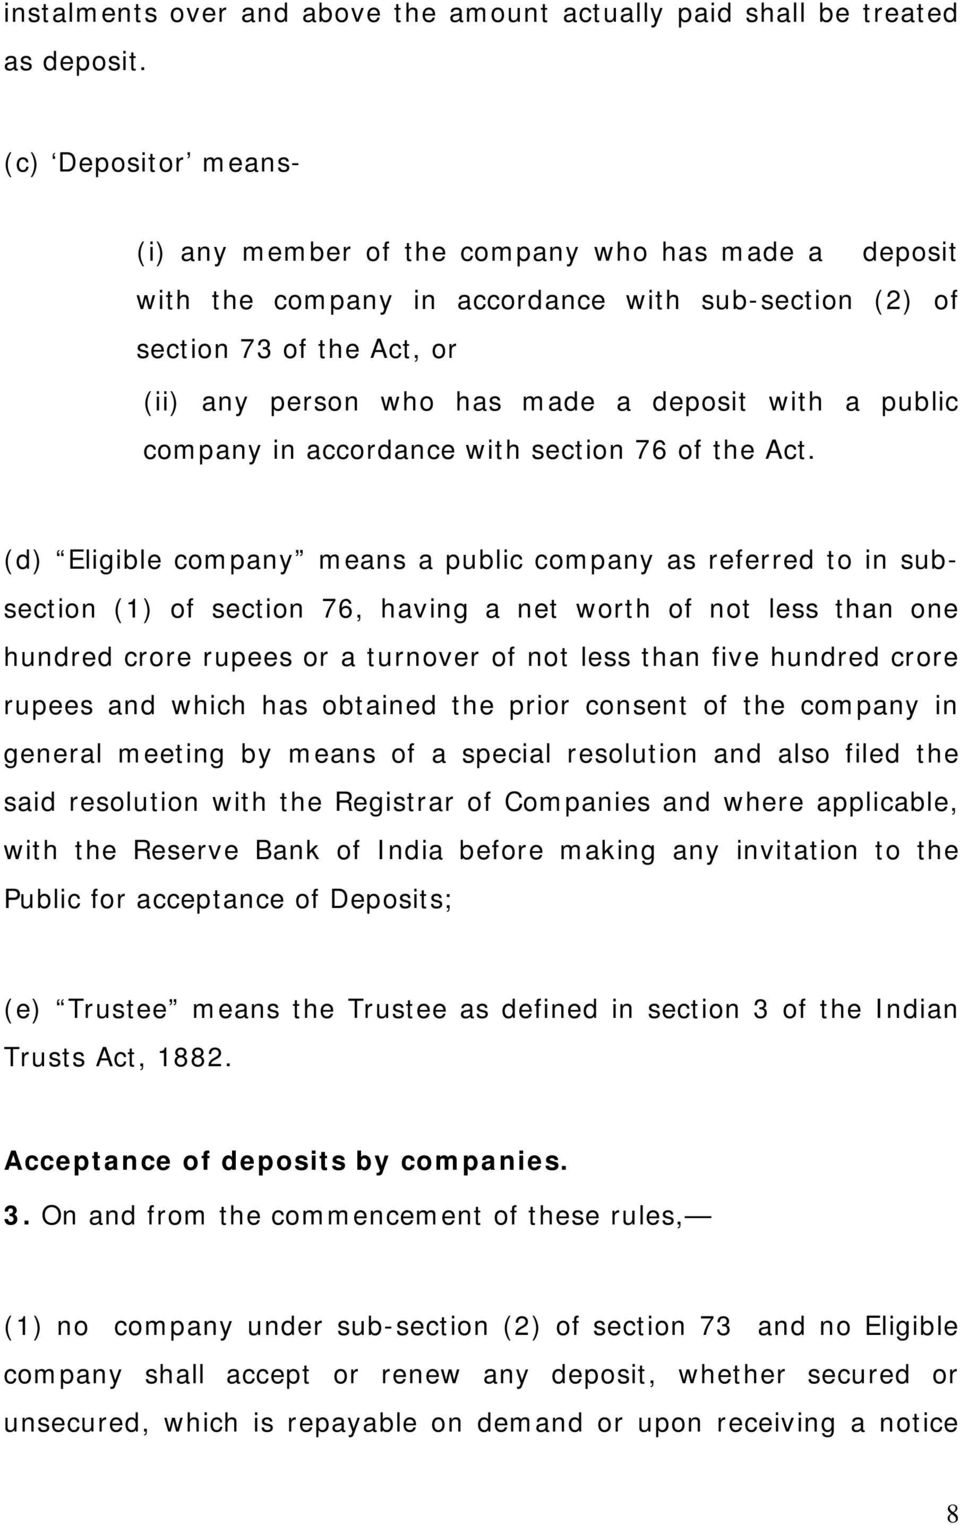 a public company in accordance with section 76 of the Act.